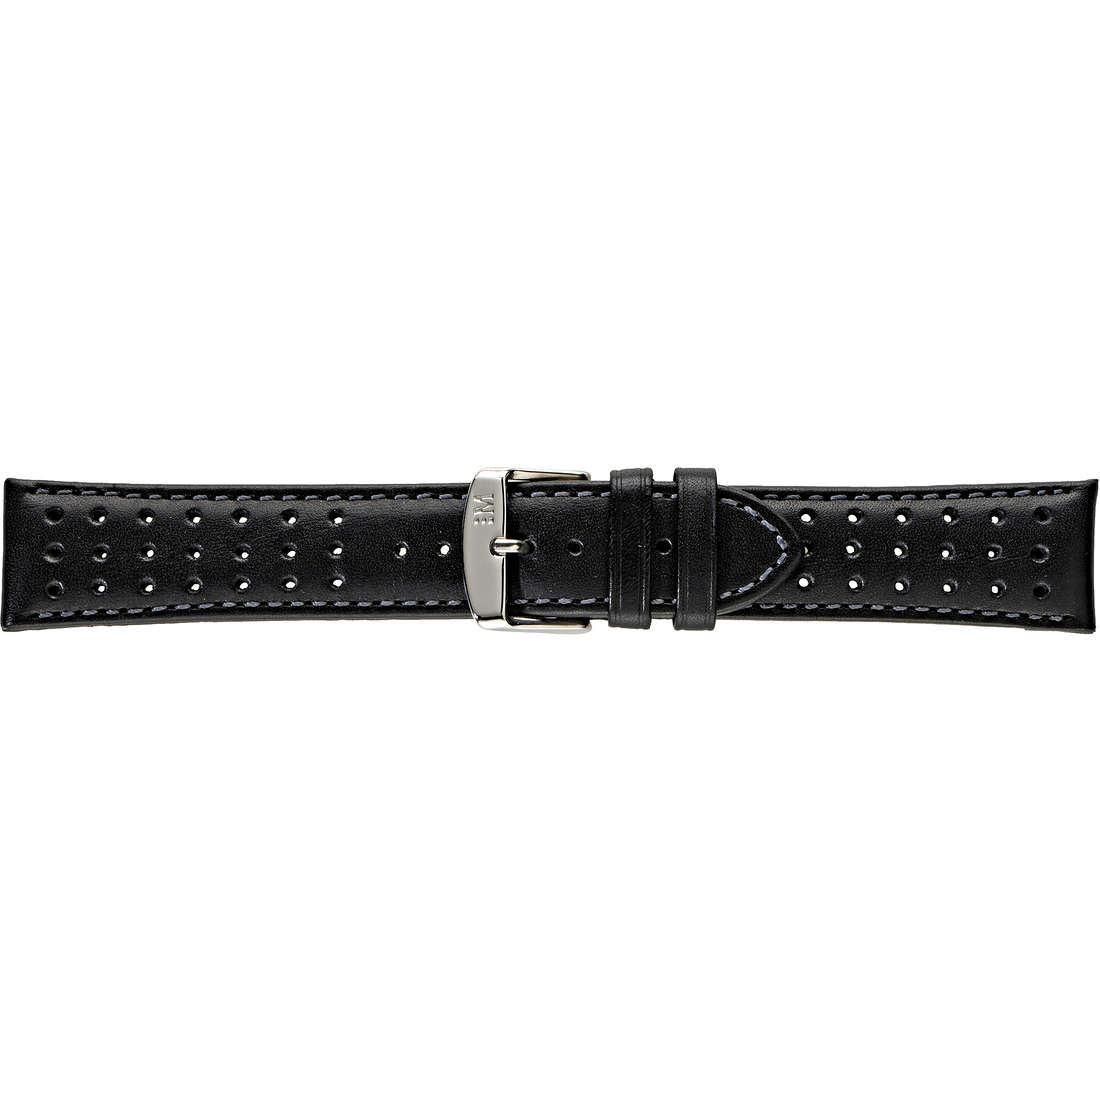 watch watch bands watch straps man Morellato Linea Sport A01U3459237019CR18